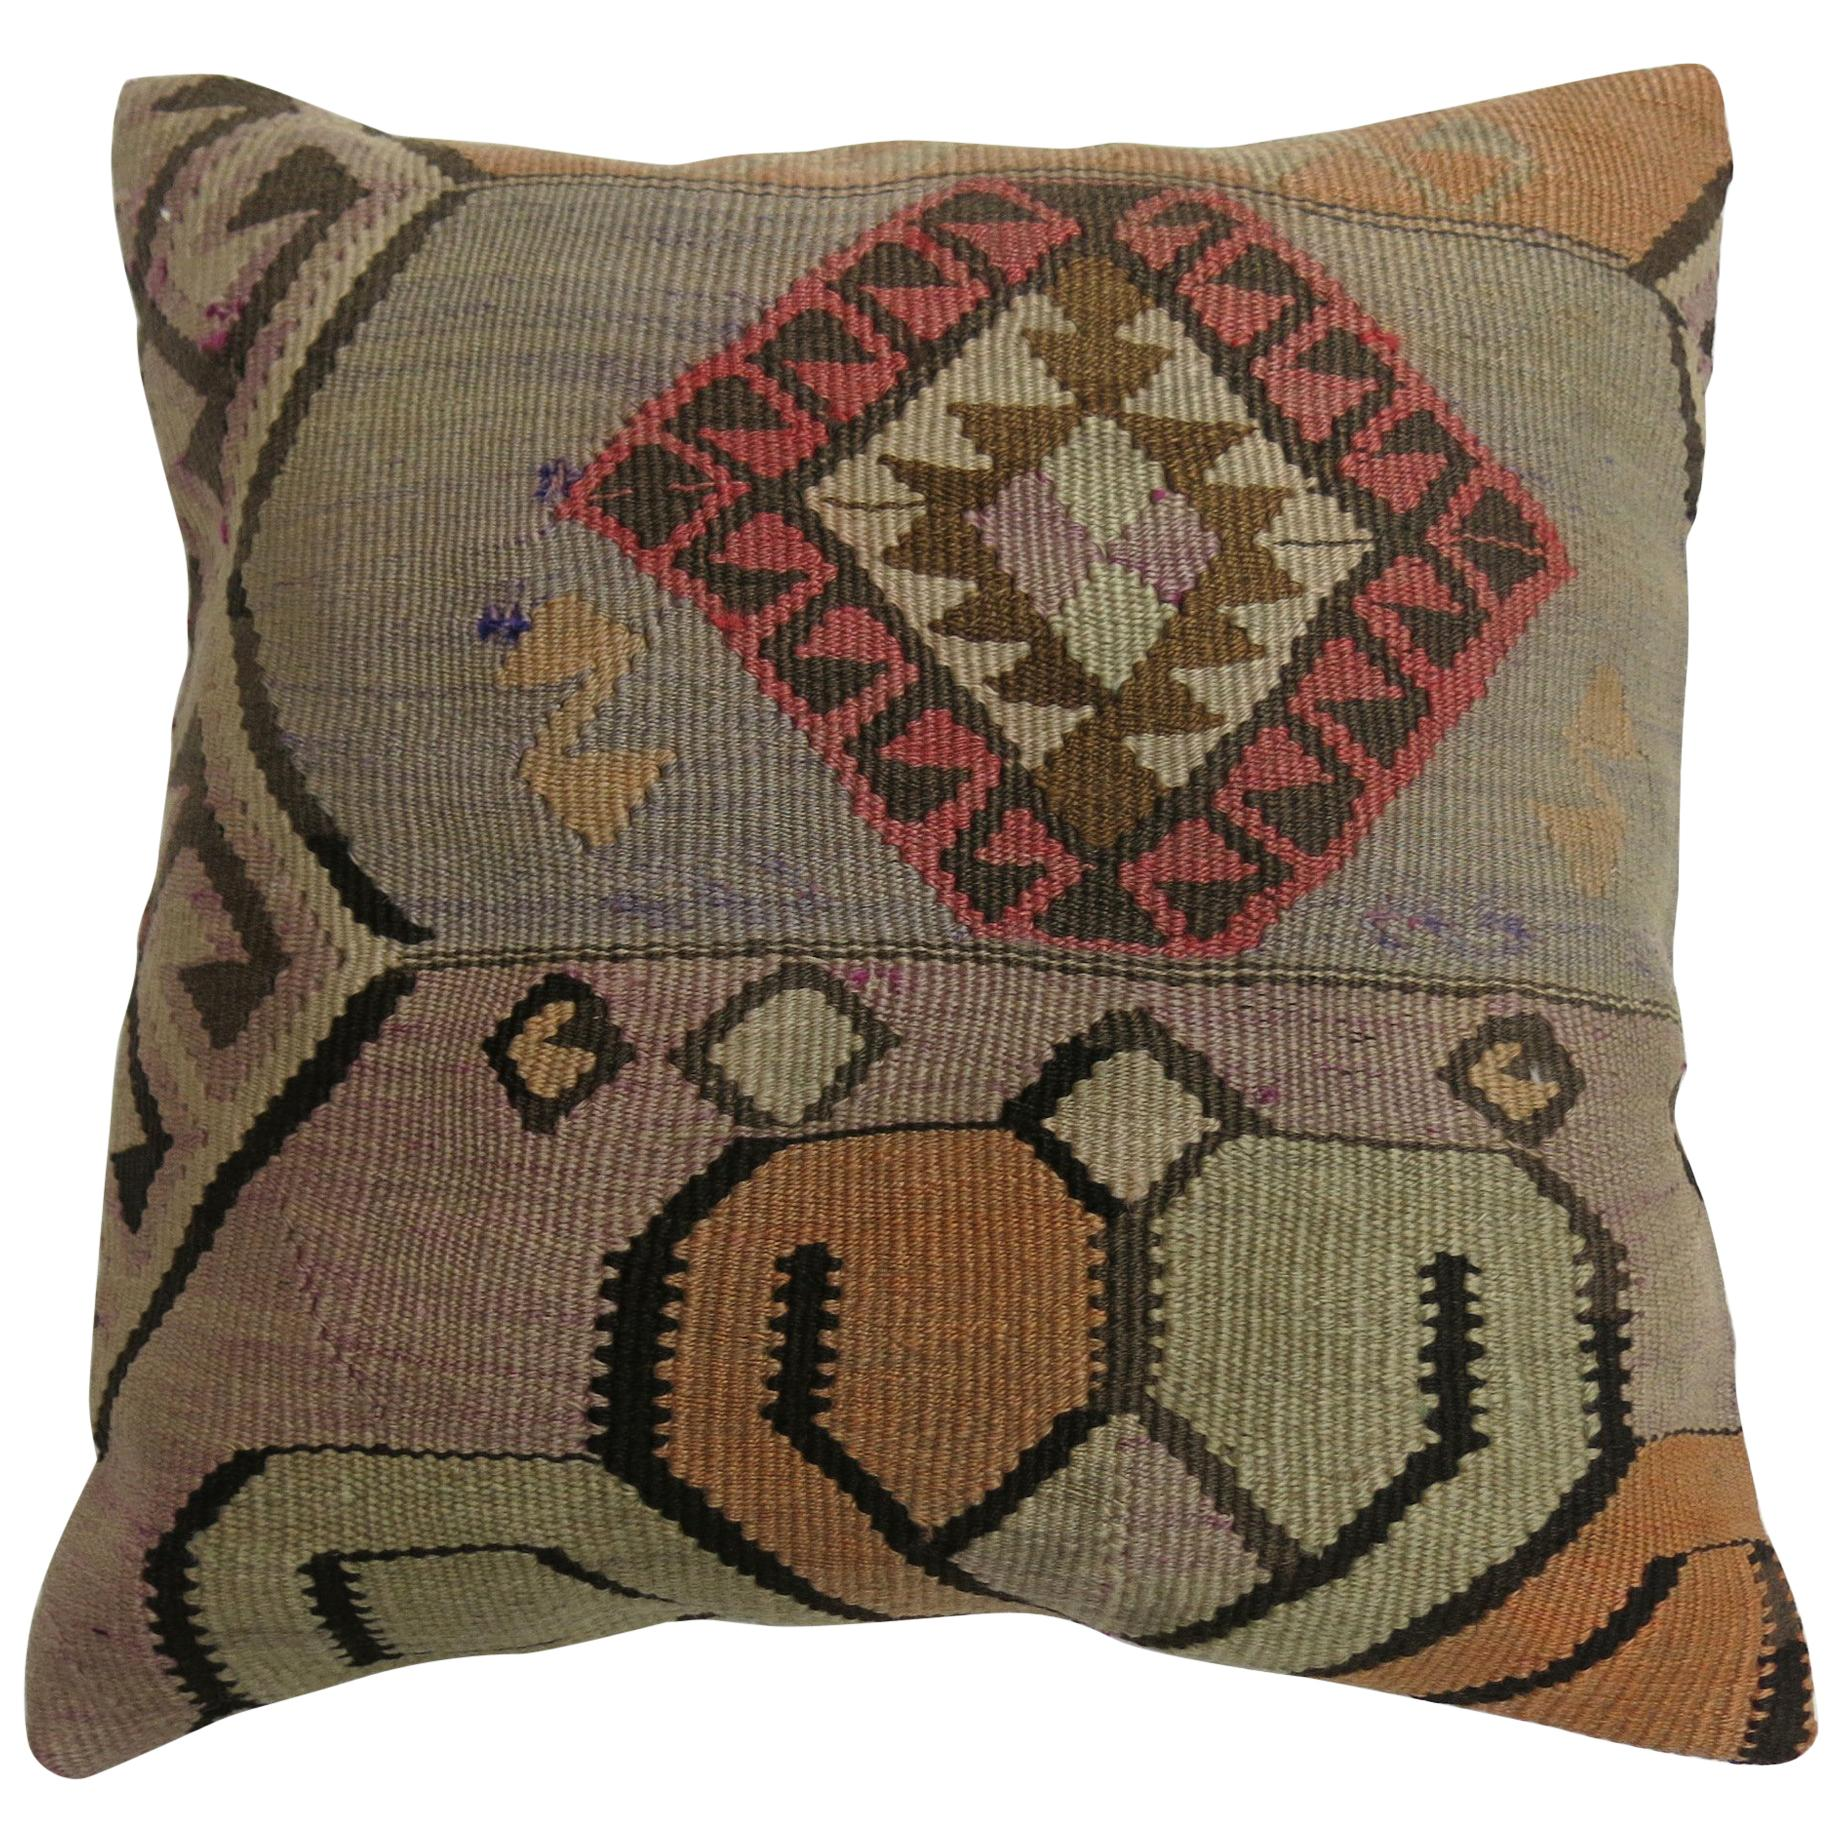 cb916a1a3f Middle Eastern Turkish Tribal Kilim Floor Pillow at 1stdibs